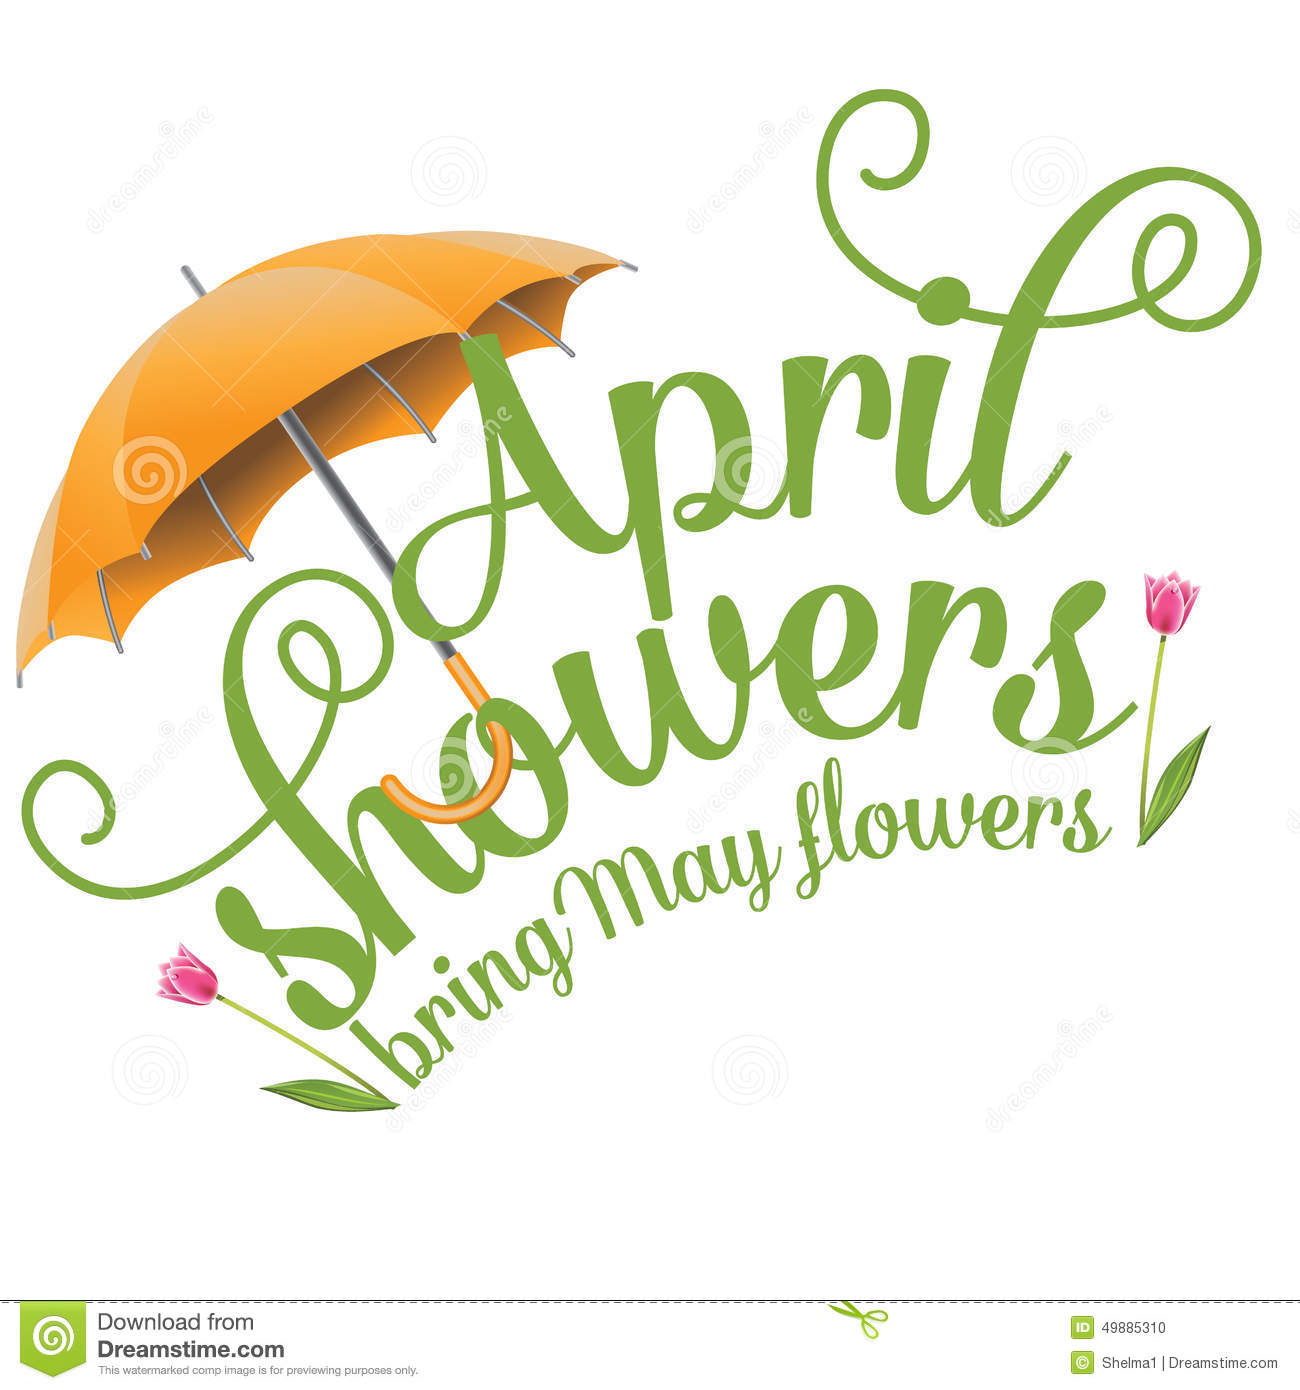 April showers bring may flowers design stock vector illustration april showers bring may flowers design mightylinksfo